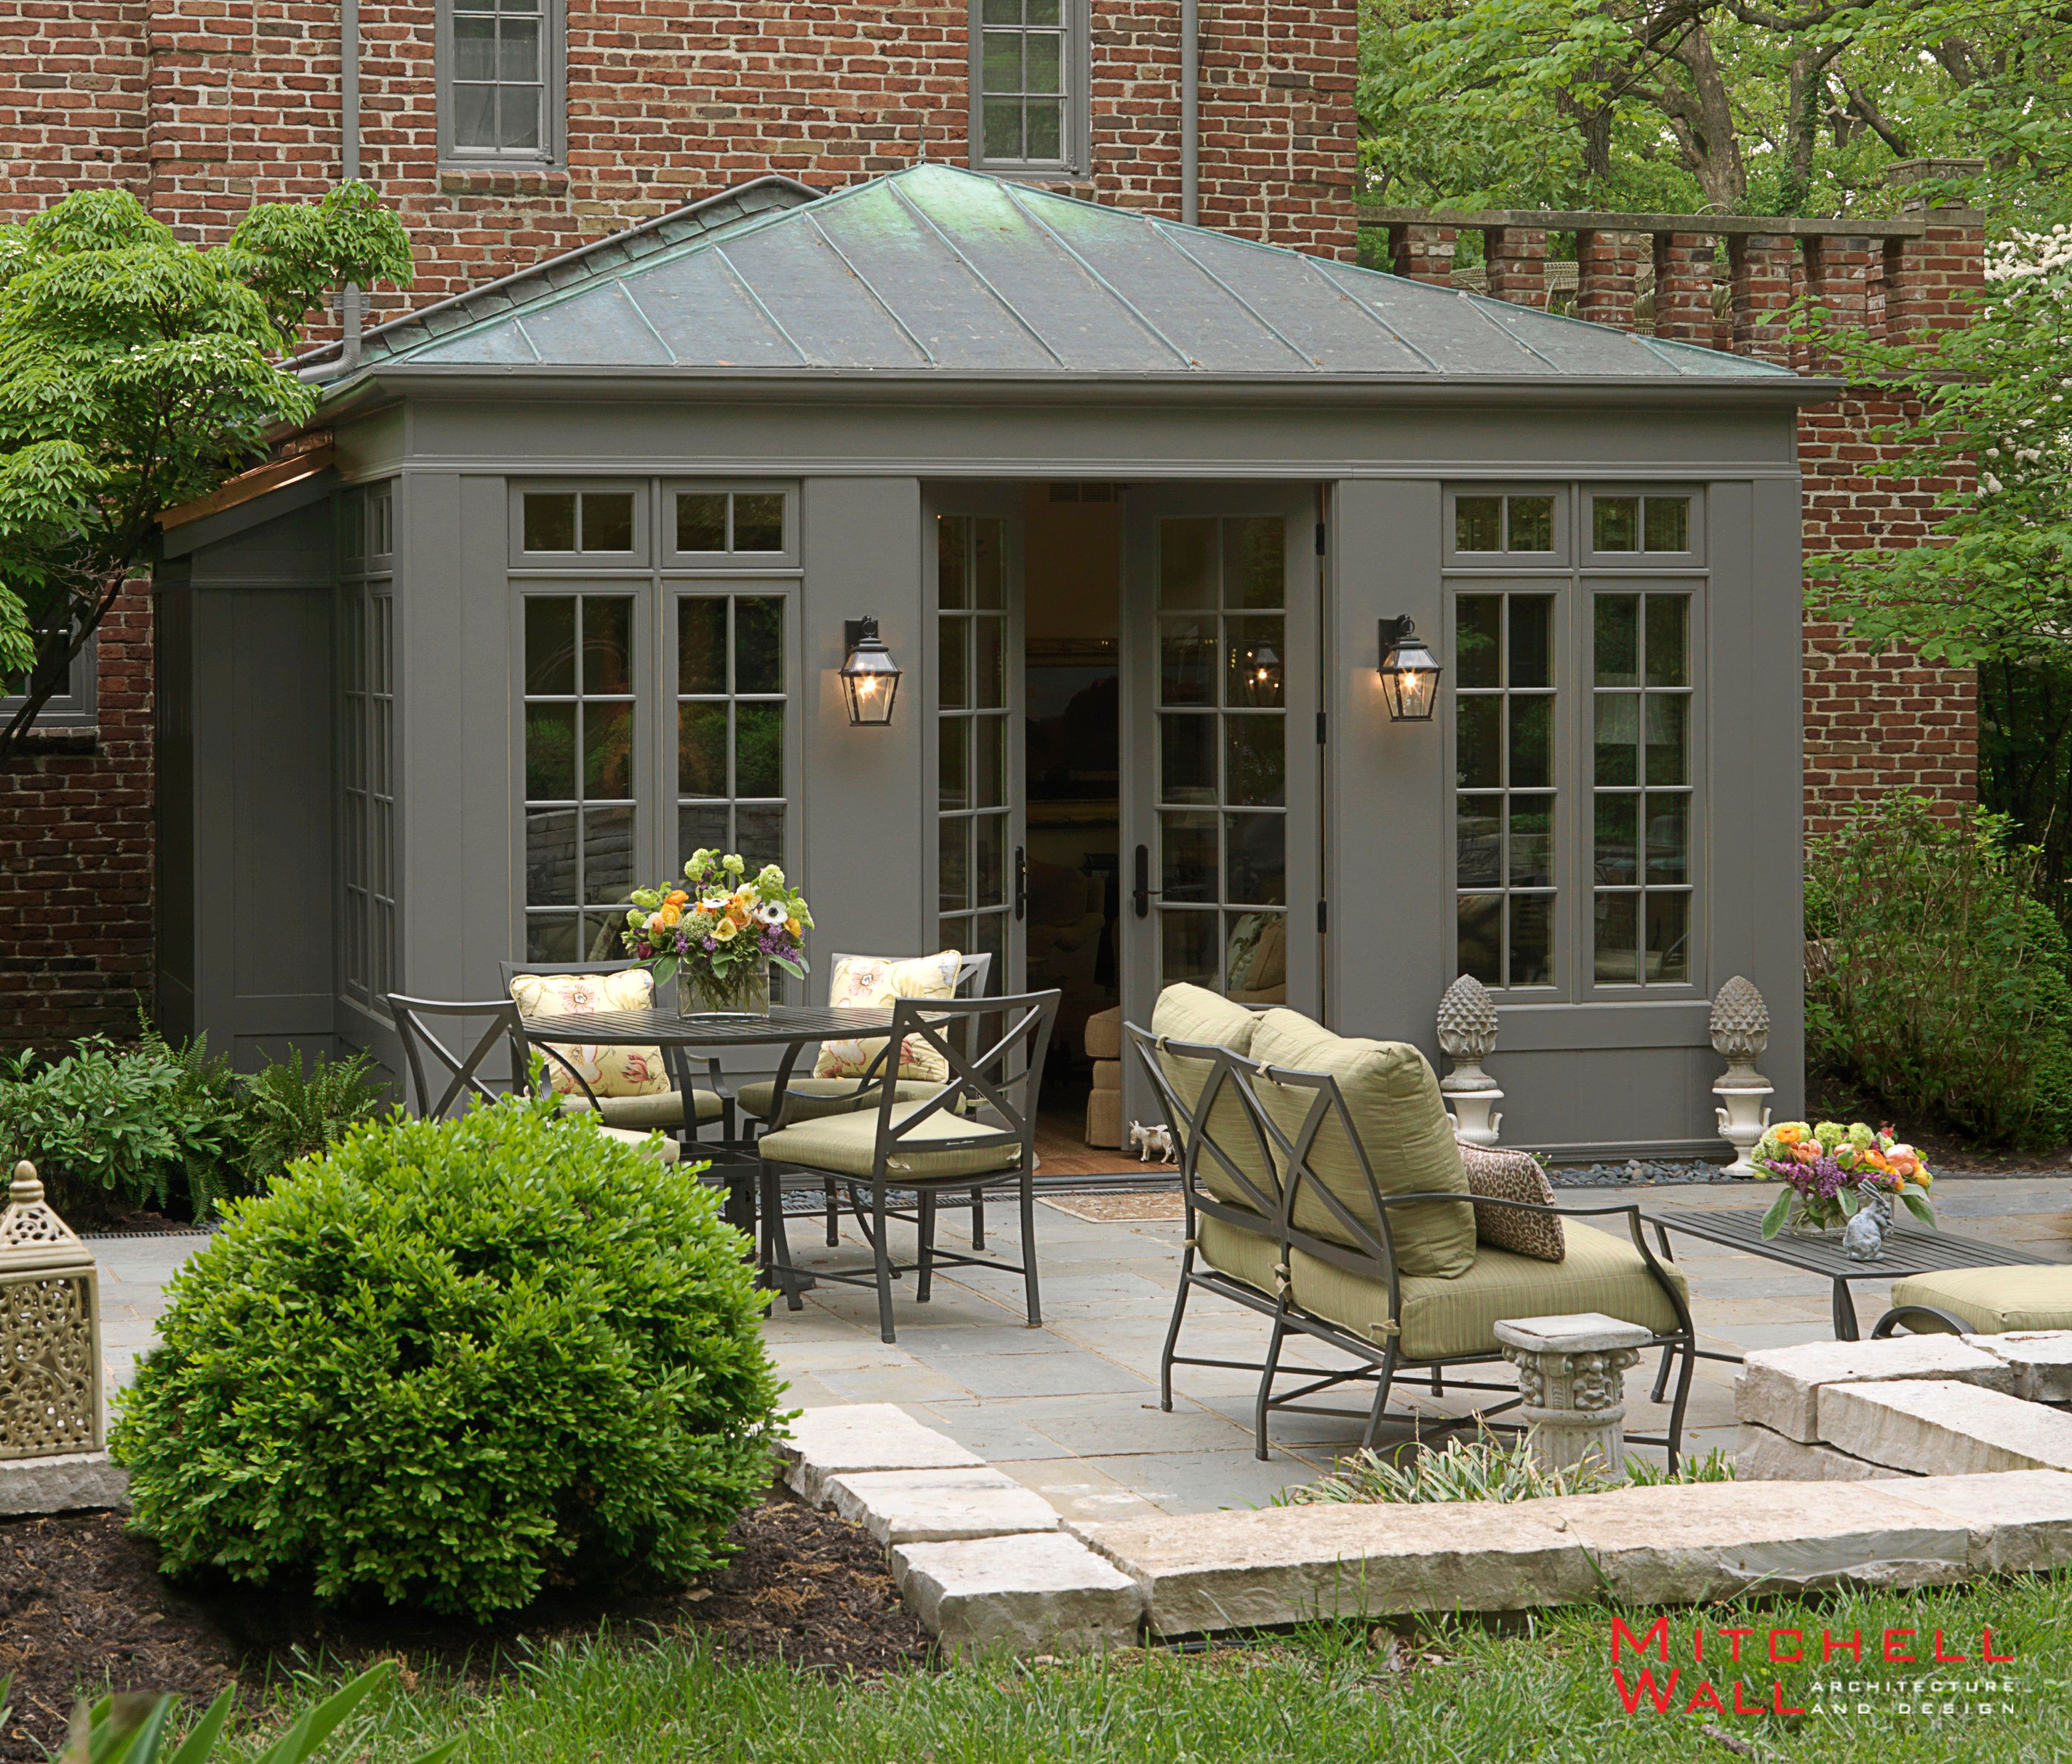 Fair Oaks Charming outdoor living space with plantings